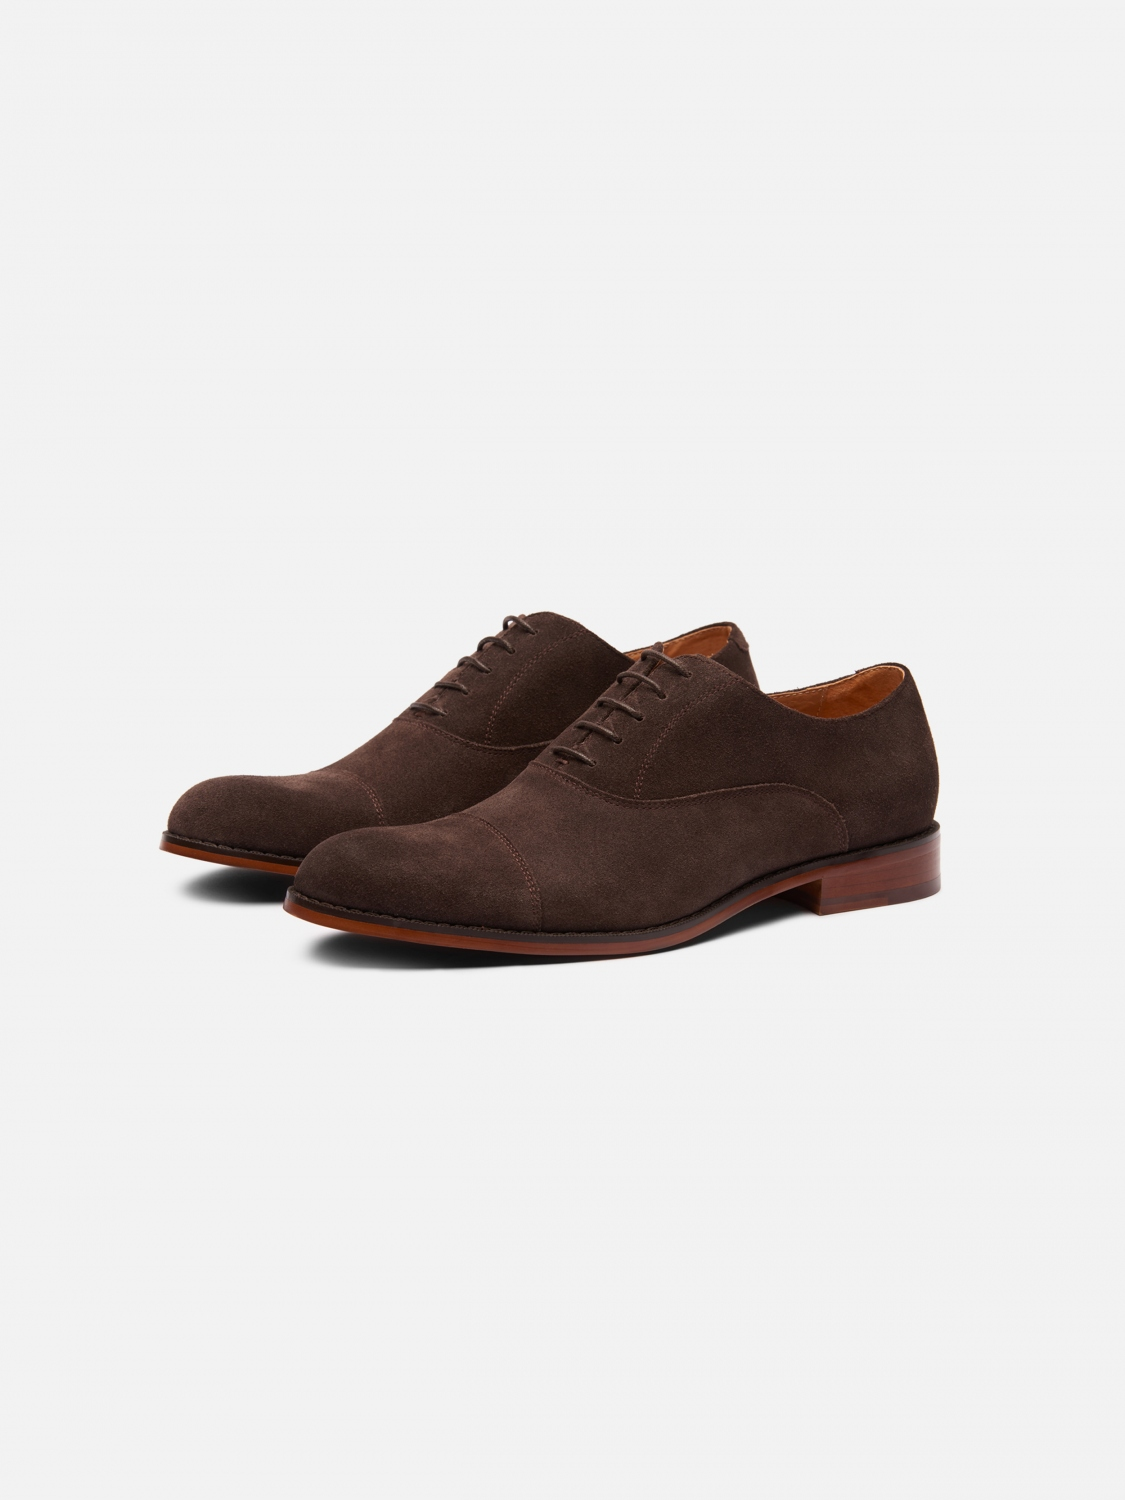 mason suede cap toe - brown